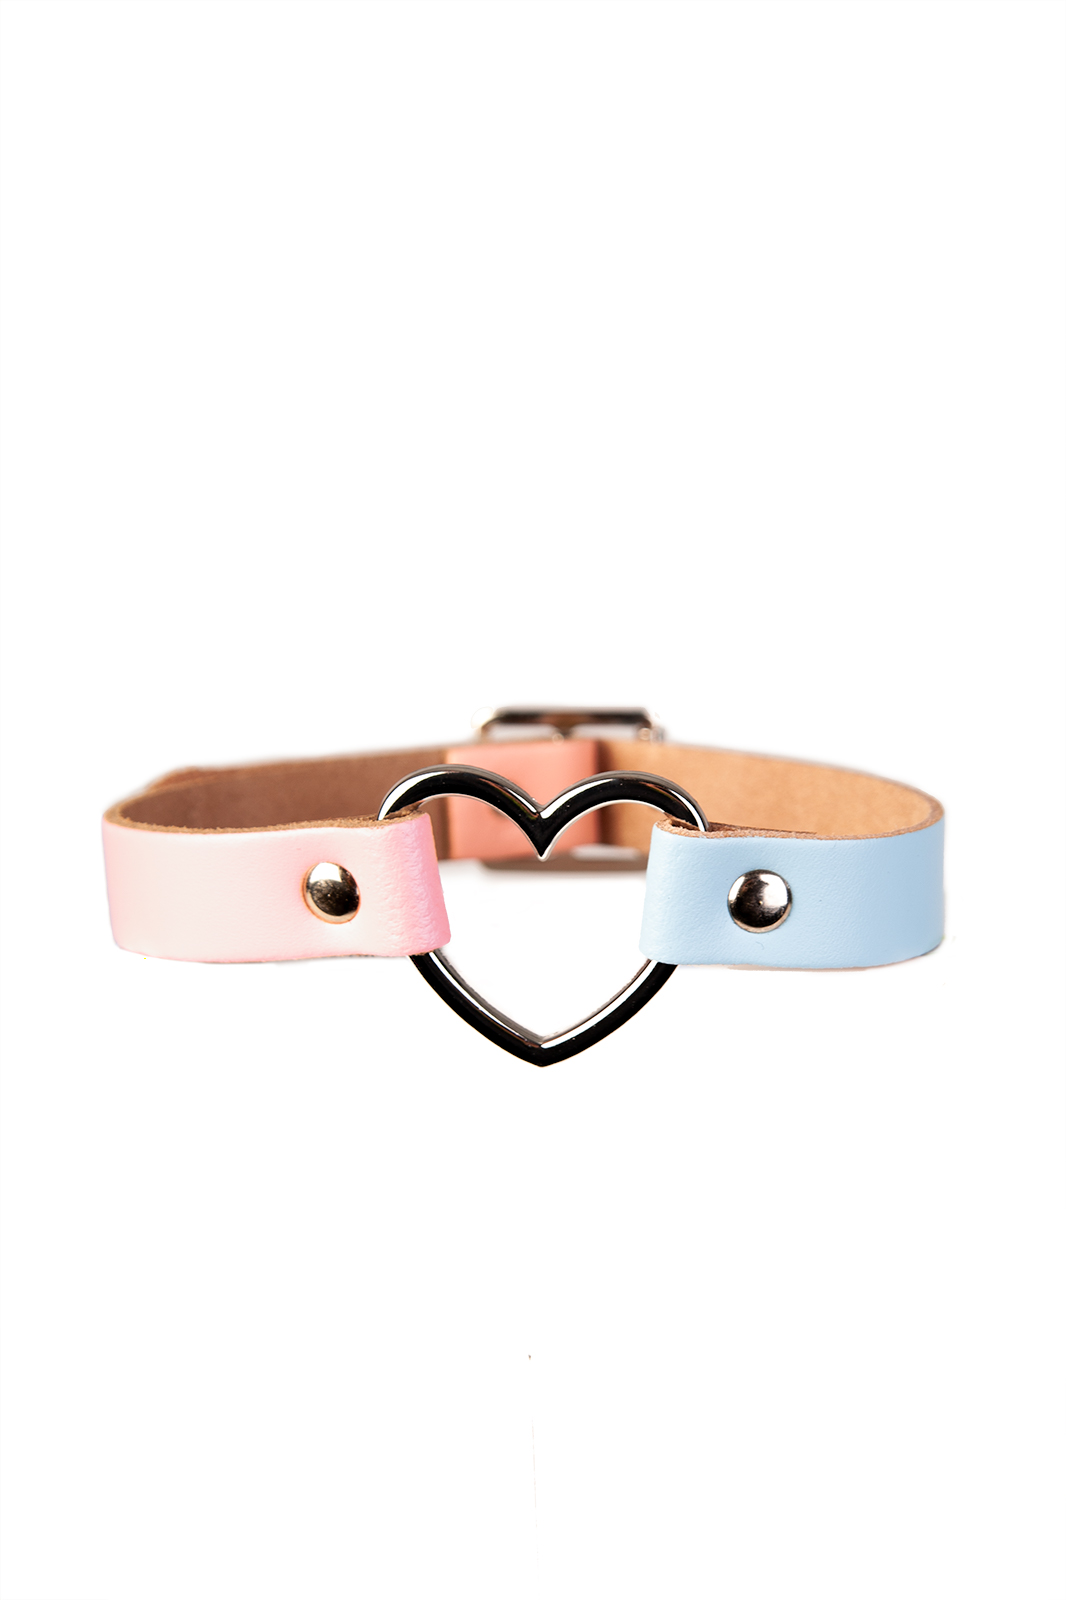 Heart Leather Choker Baby Blue And Pink